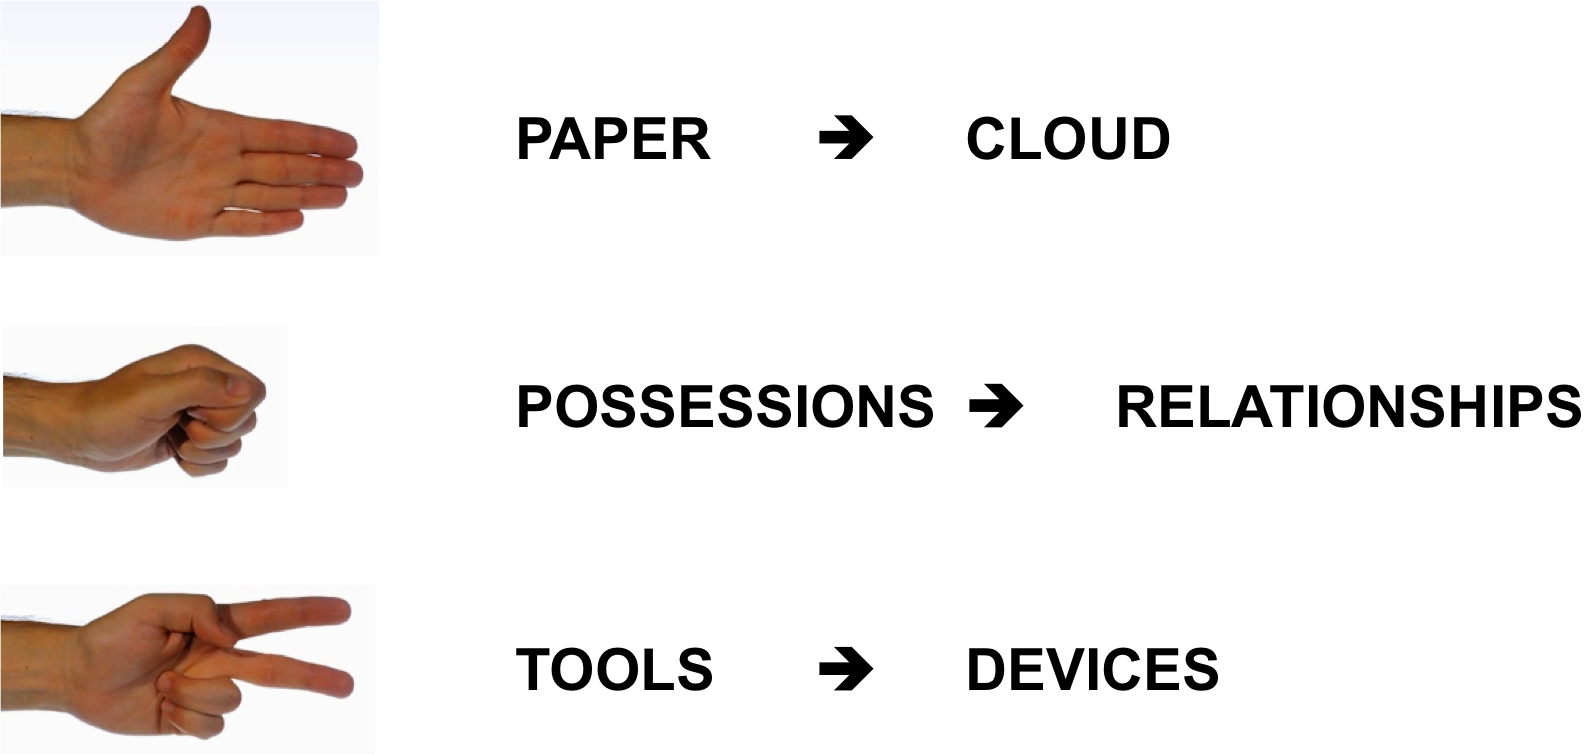 Post-Digital Rock Paper Scissors